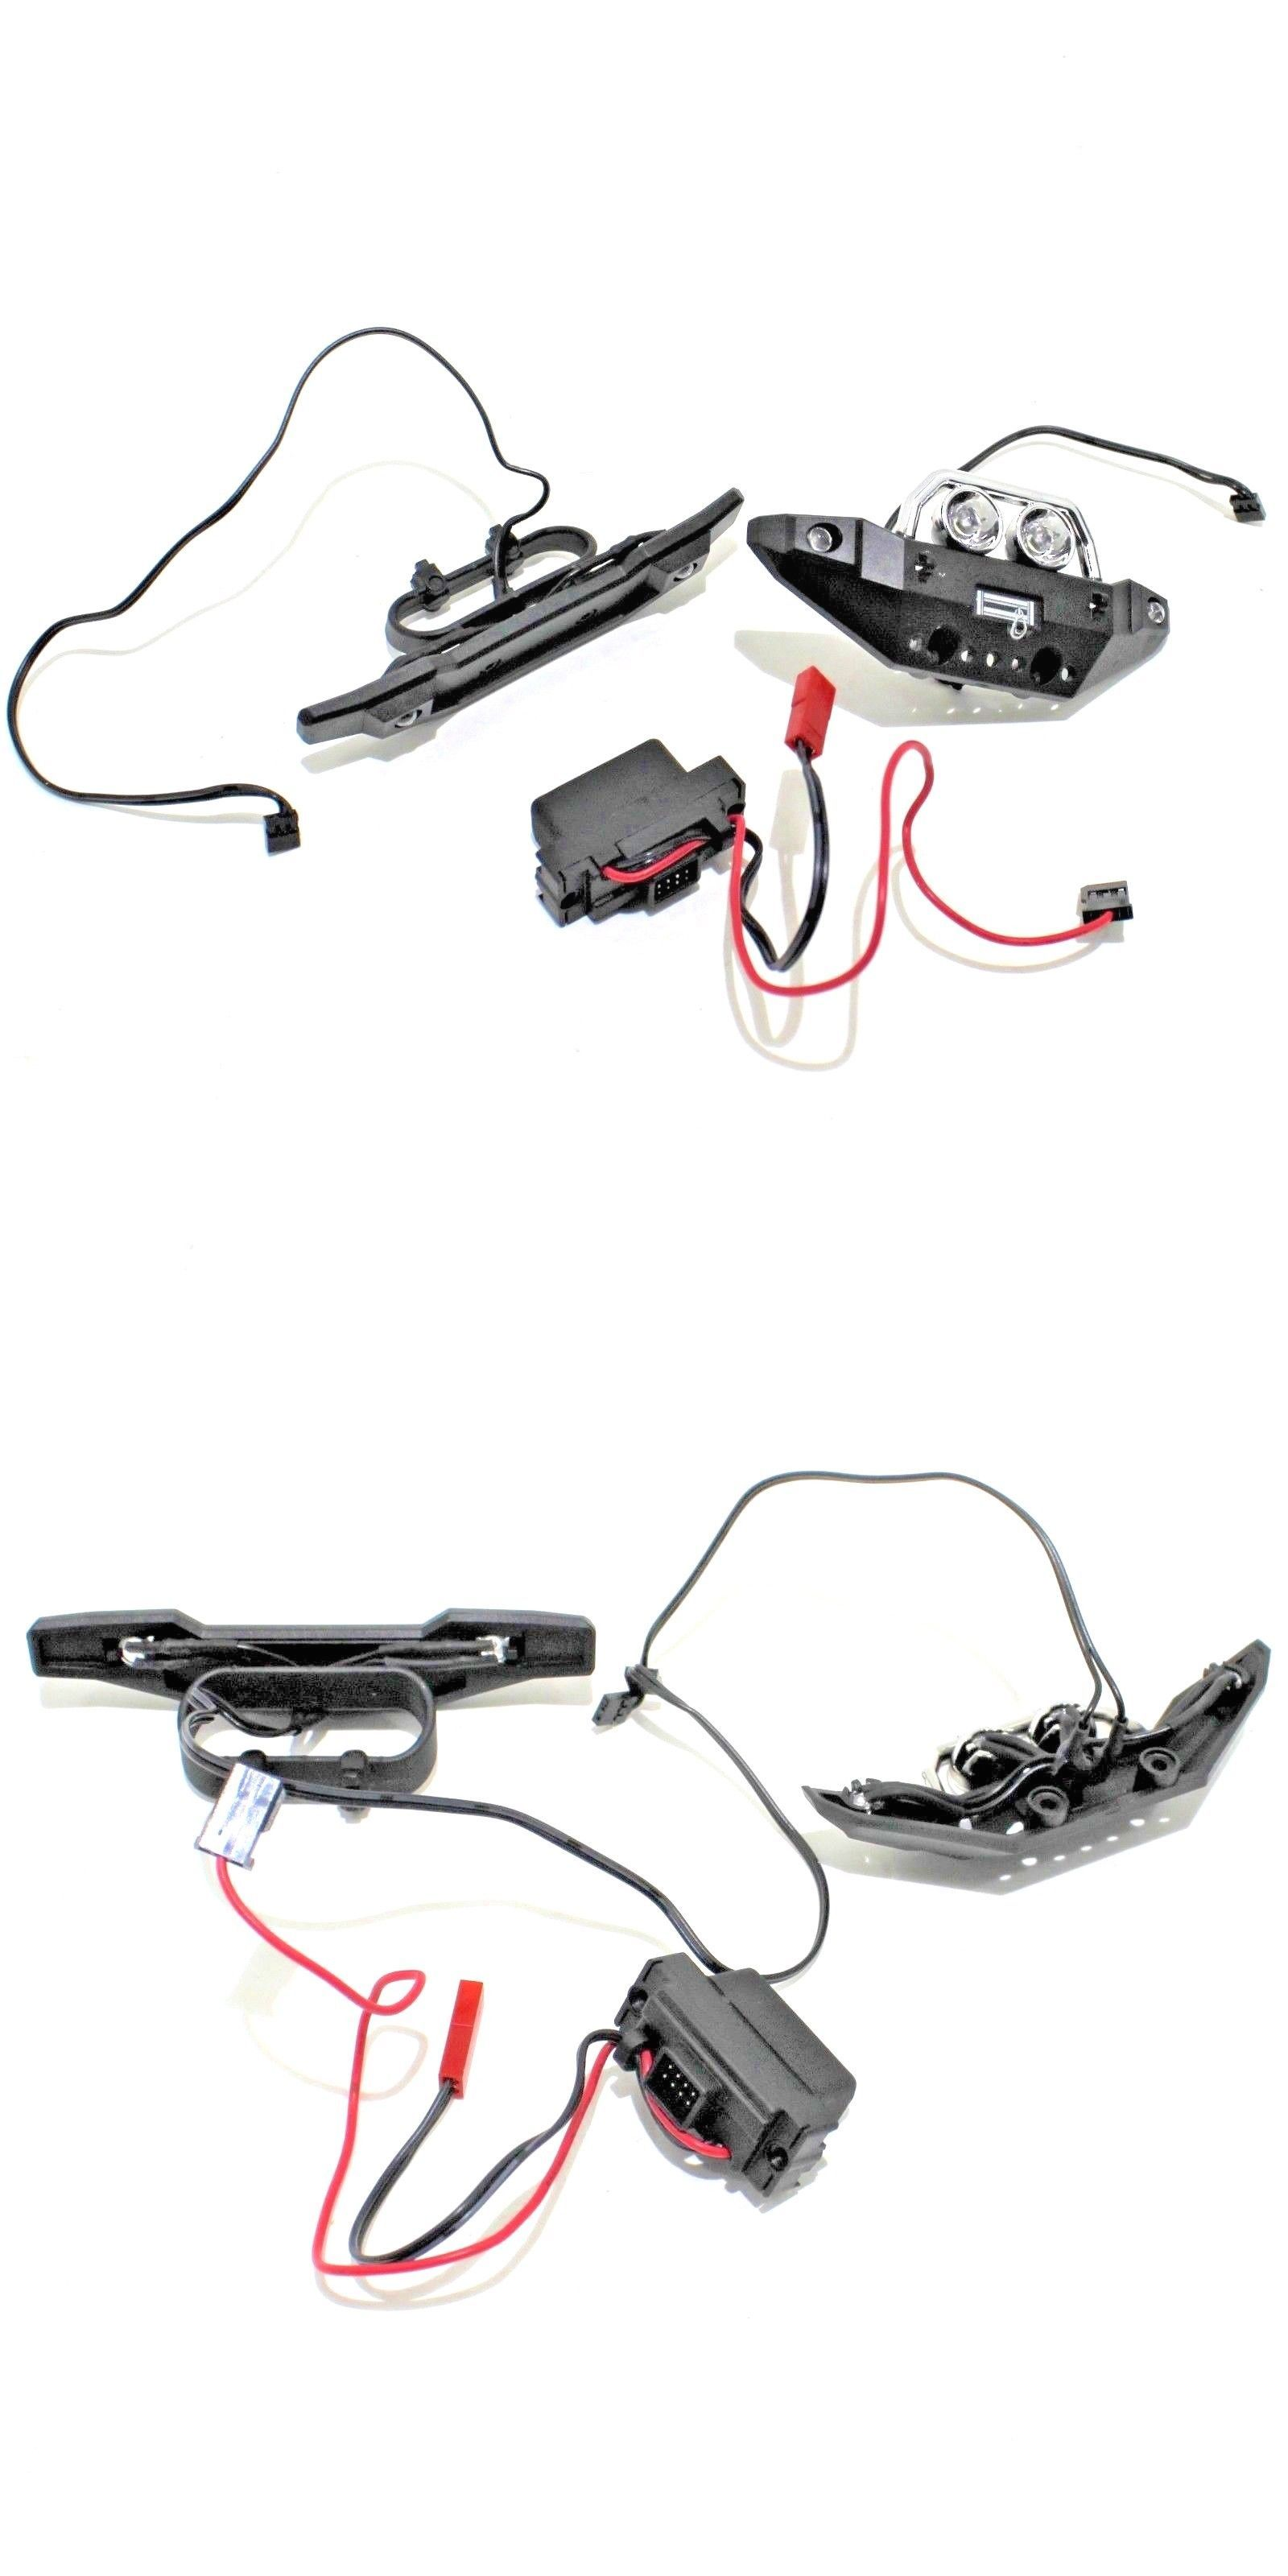 medium resolution of lighting and lamps 182177 traxxas summit 1 16 front rear bumpers led lights wire harness mounts wiring box buy it now only 26 99 on ebay